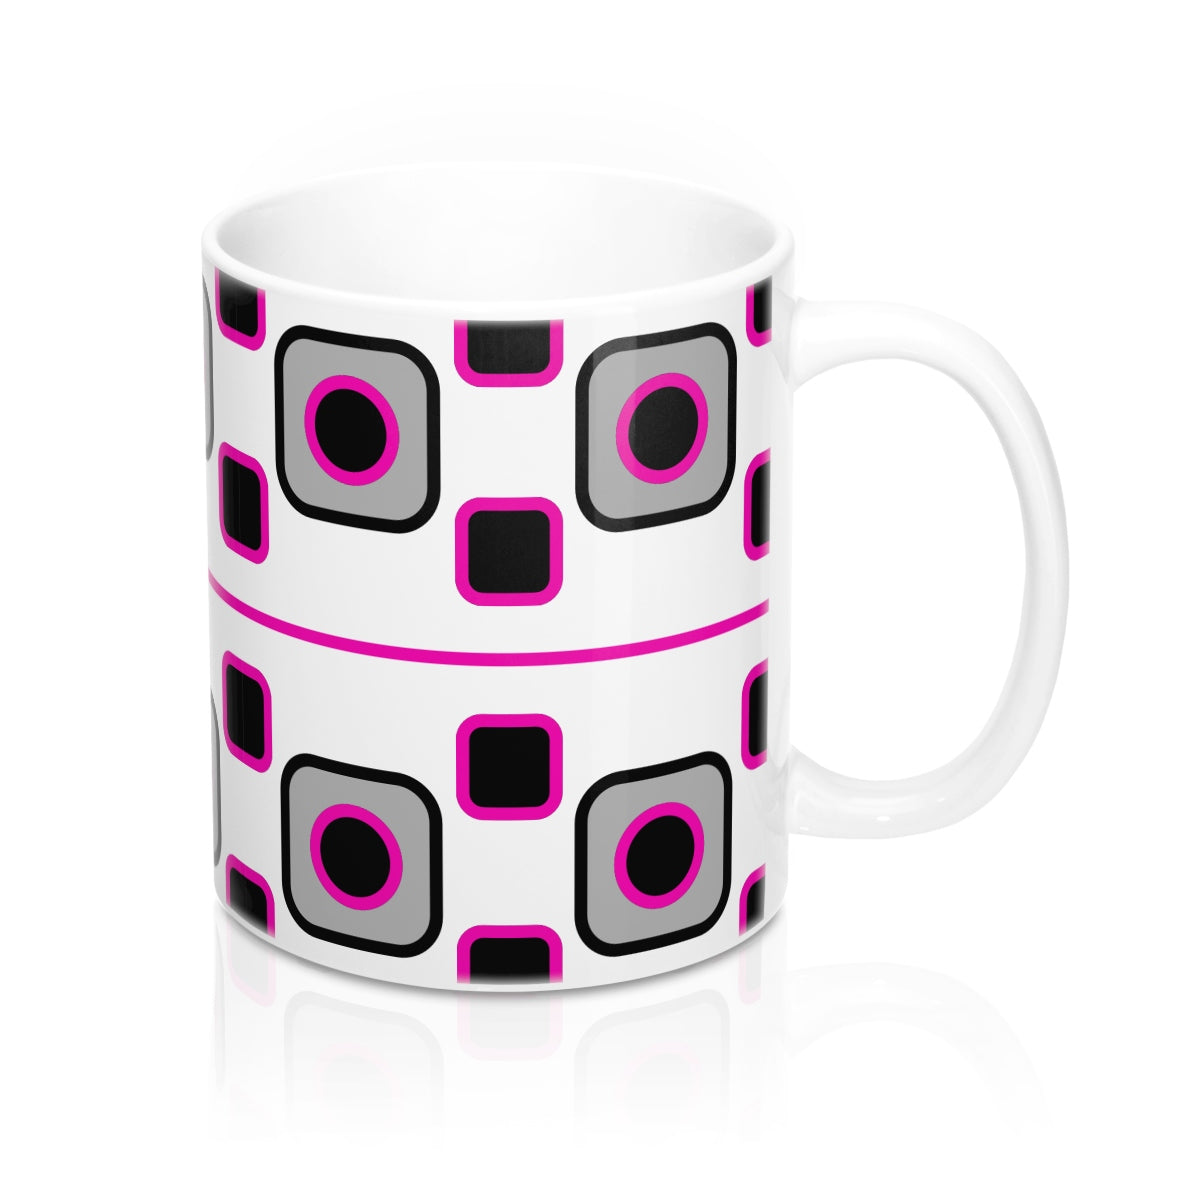 Mug - Retro Pink Black - Sample